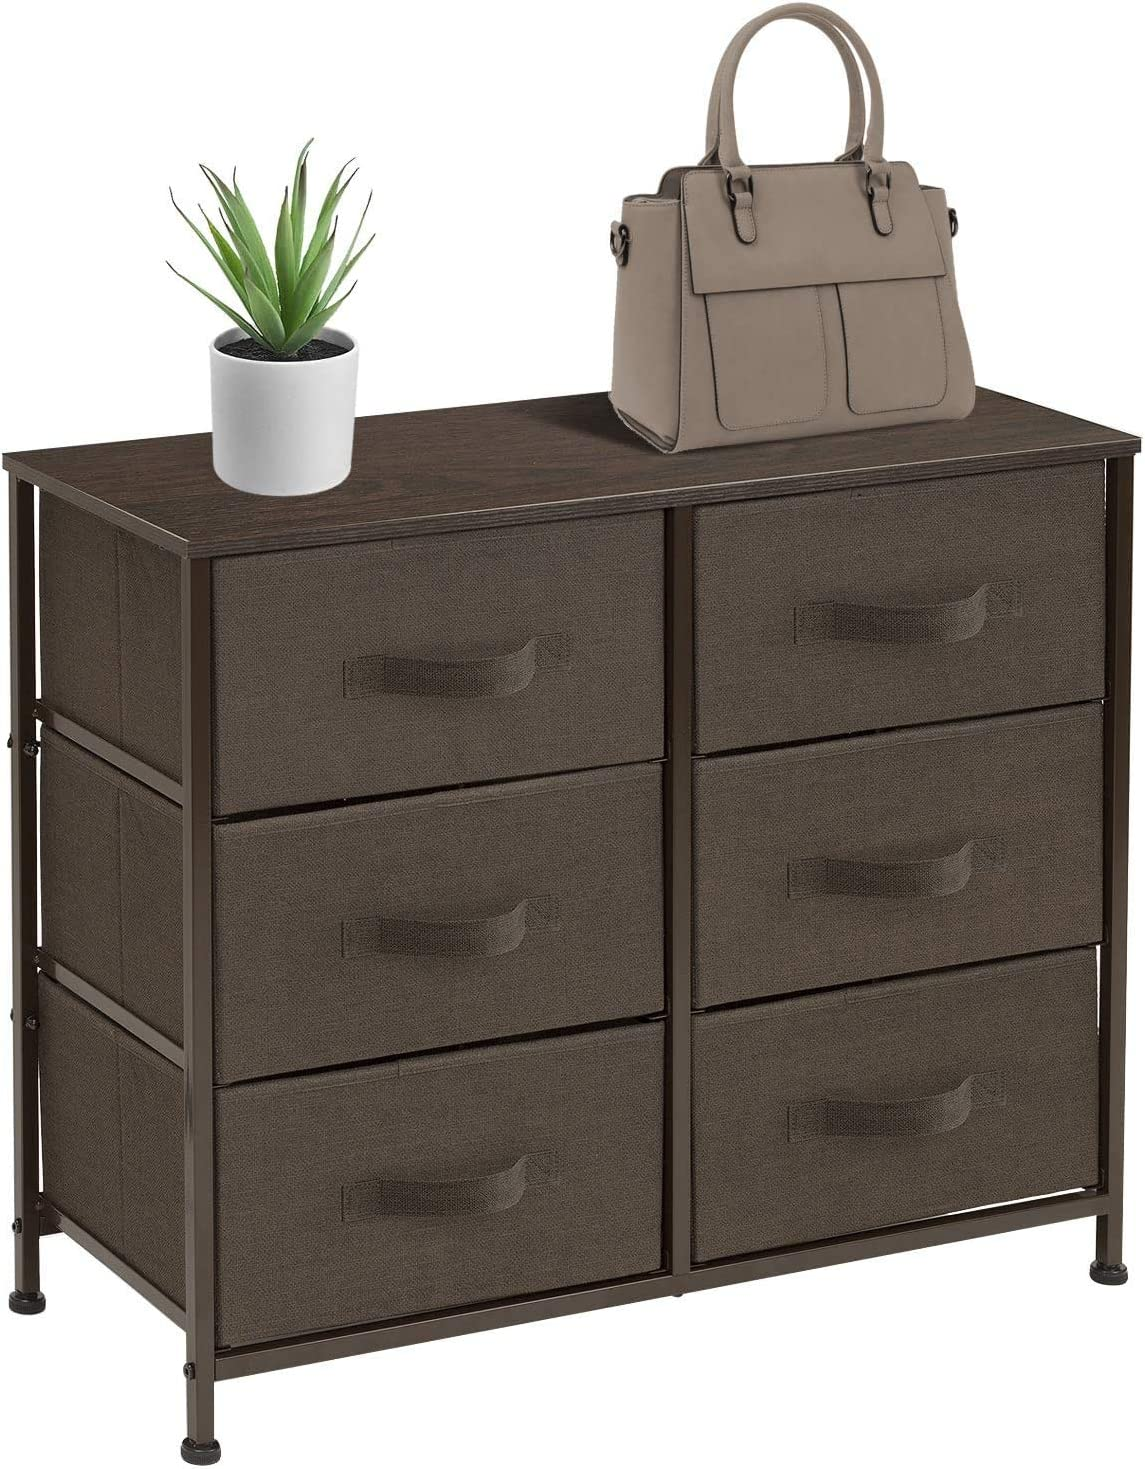 Sorbus Dresser with 3 Drawers - Furniture Storage Tower Unit for Bedroom,  Hallway, Closet, Office Organization - Steel Frame, Wood Top, Easy Pull